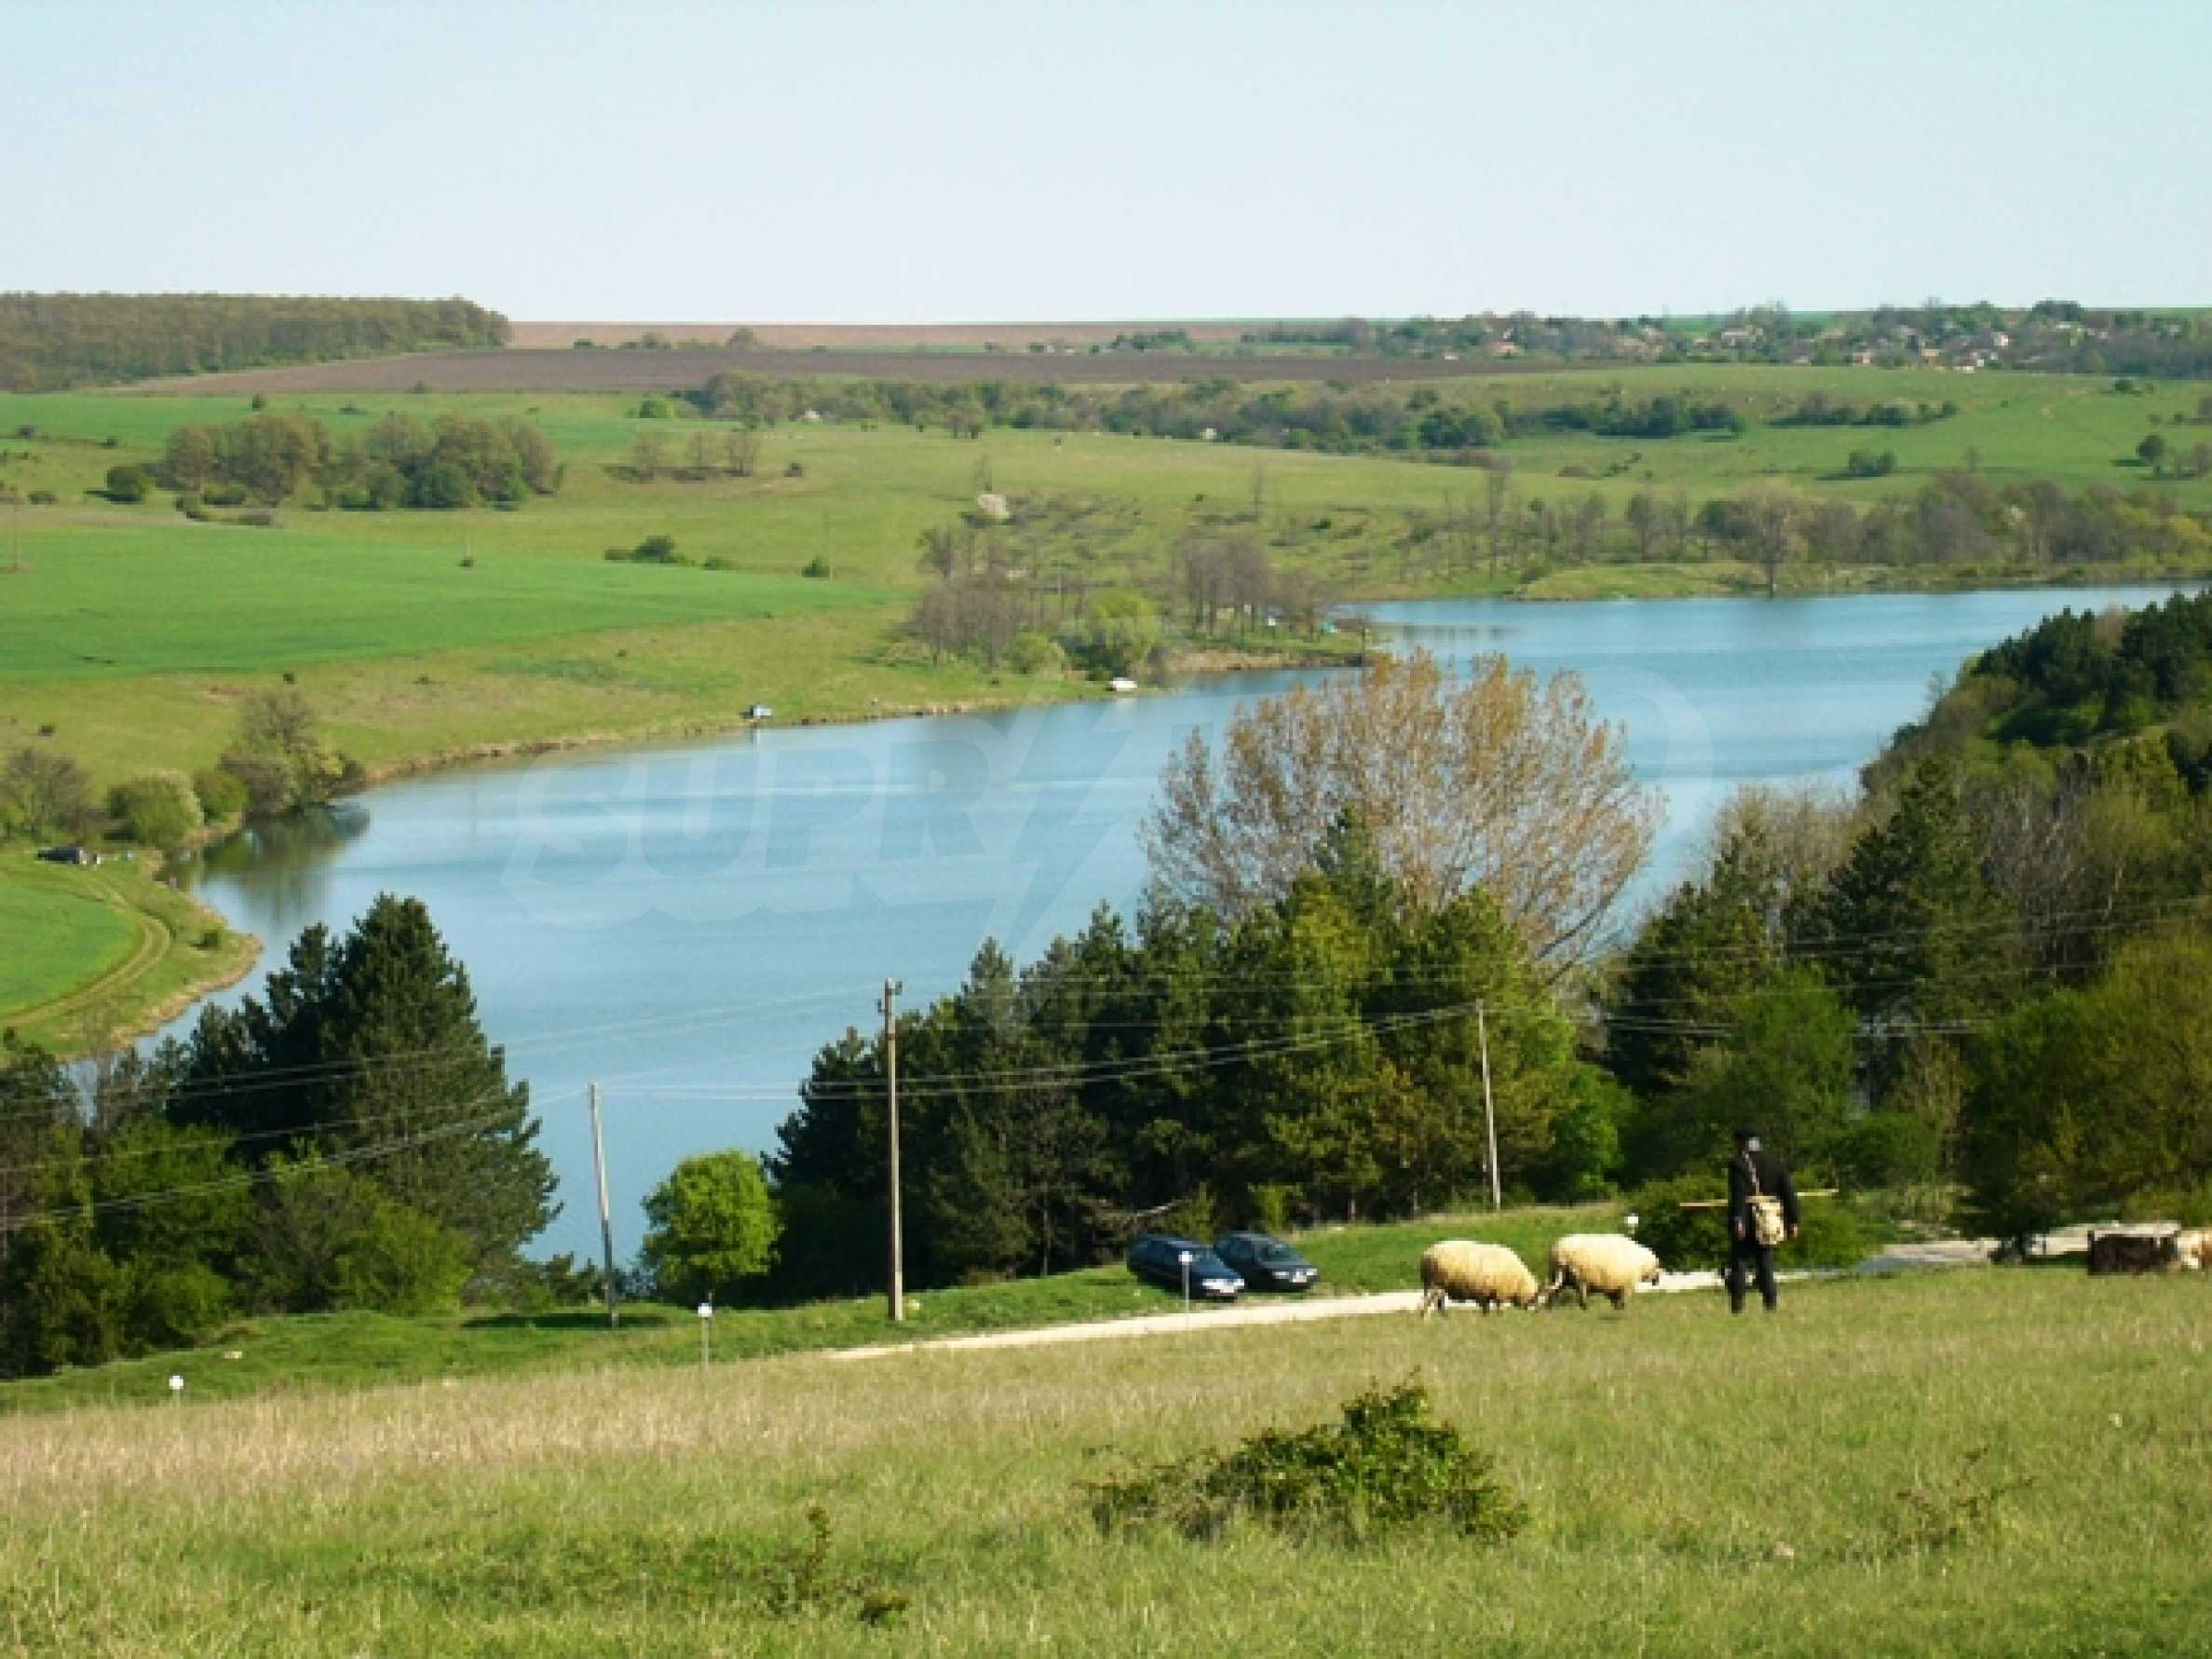 An extremely hot offer for regulated plots for sale by a beautiful lake 16 miles away from the sea 19